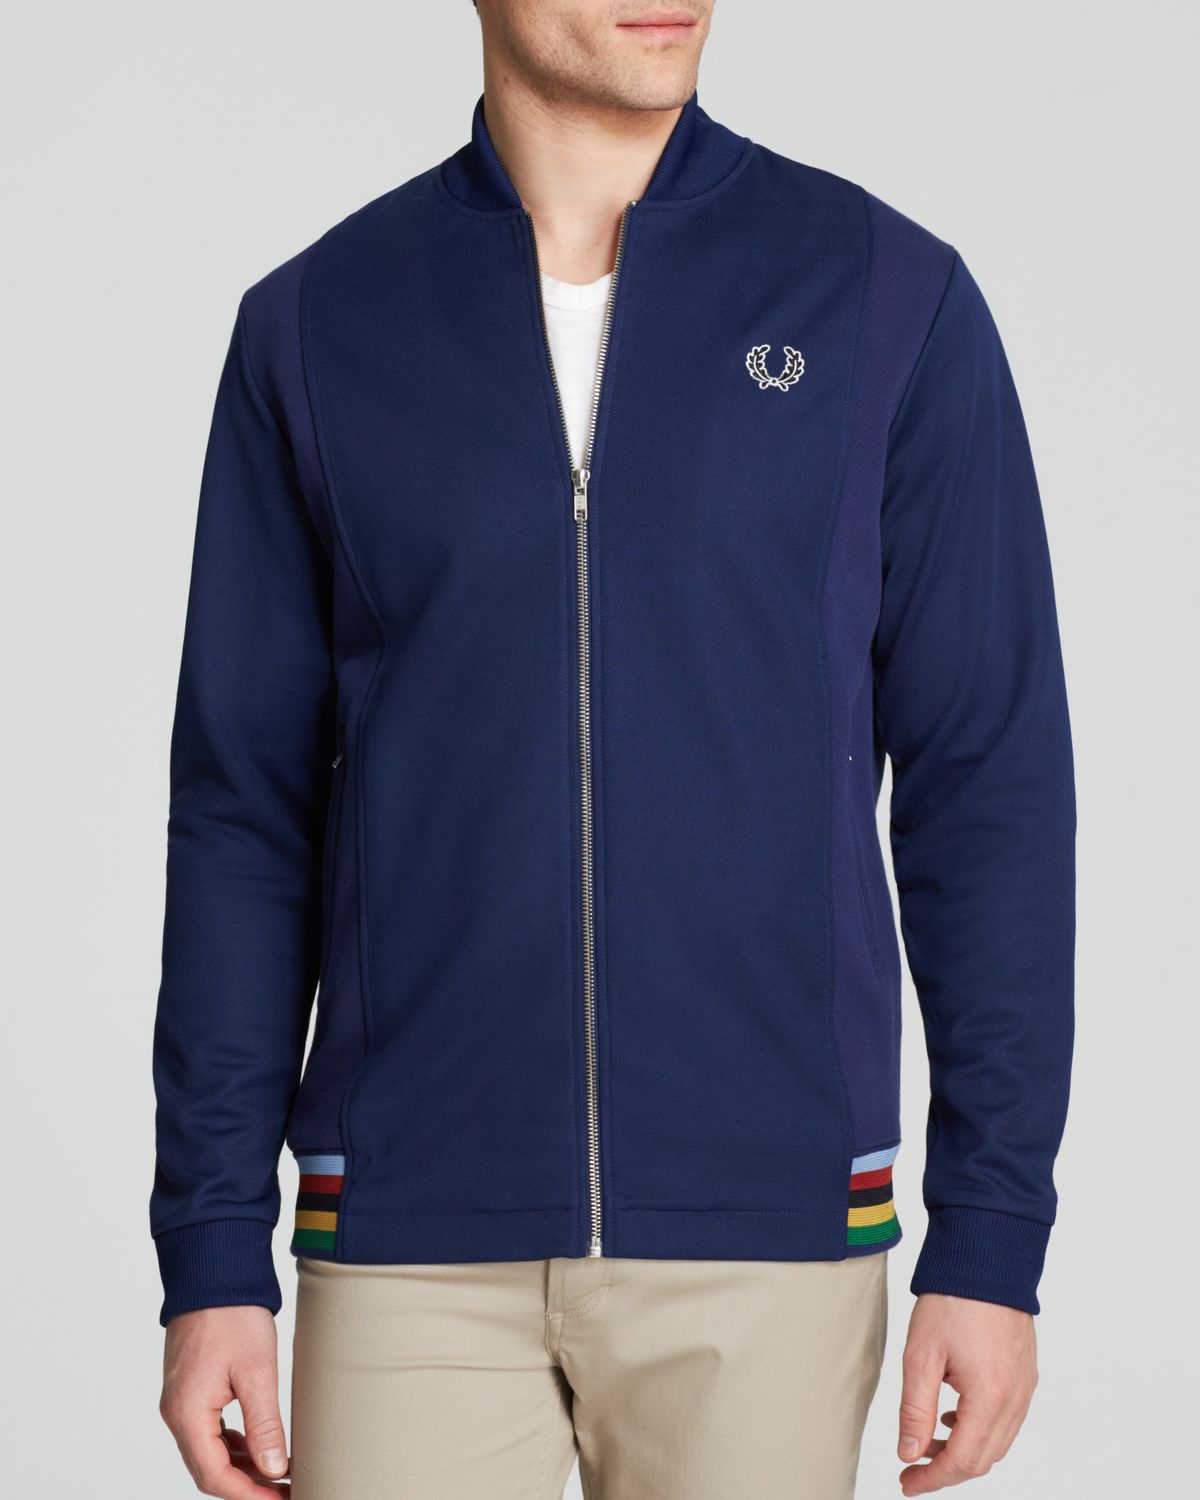 fred perry bomber neck track jacket in blue for men lyst. Black Bedroom Furniture Sets. Home Design Ideas